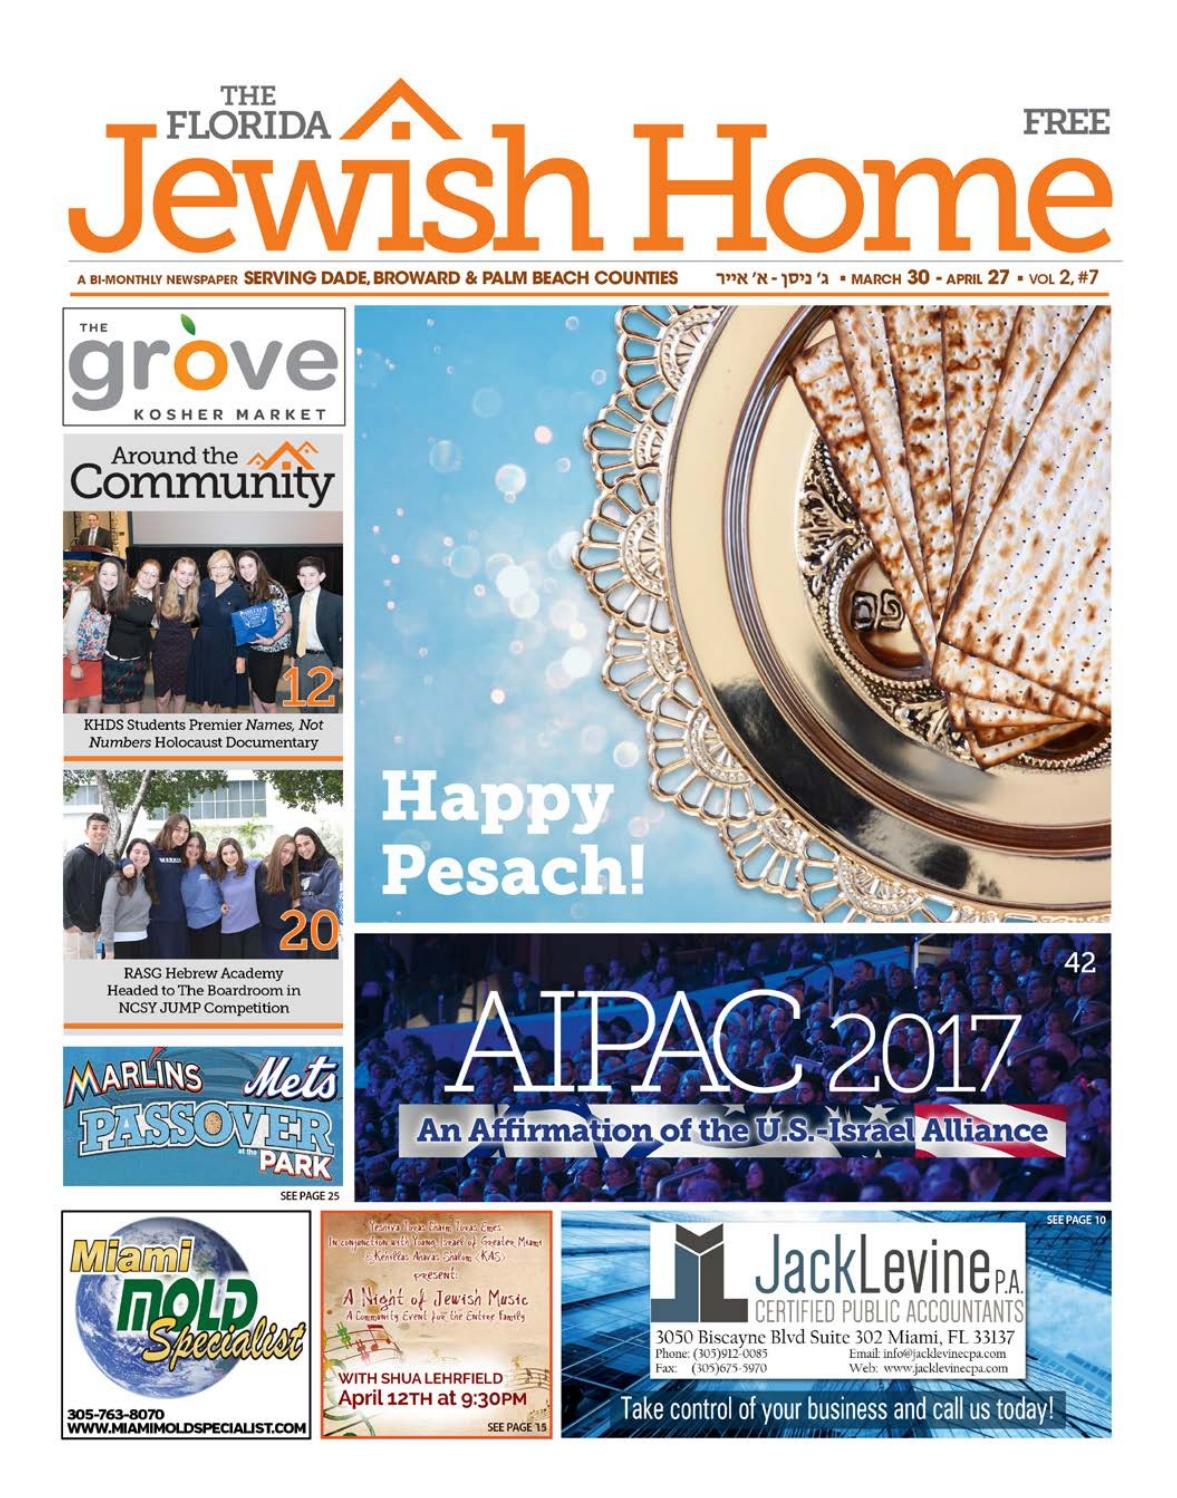 The Florida Jewish Home Pesach Ed 3 29 17 By Florida Jewish Home